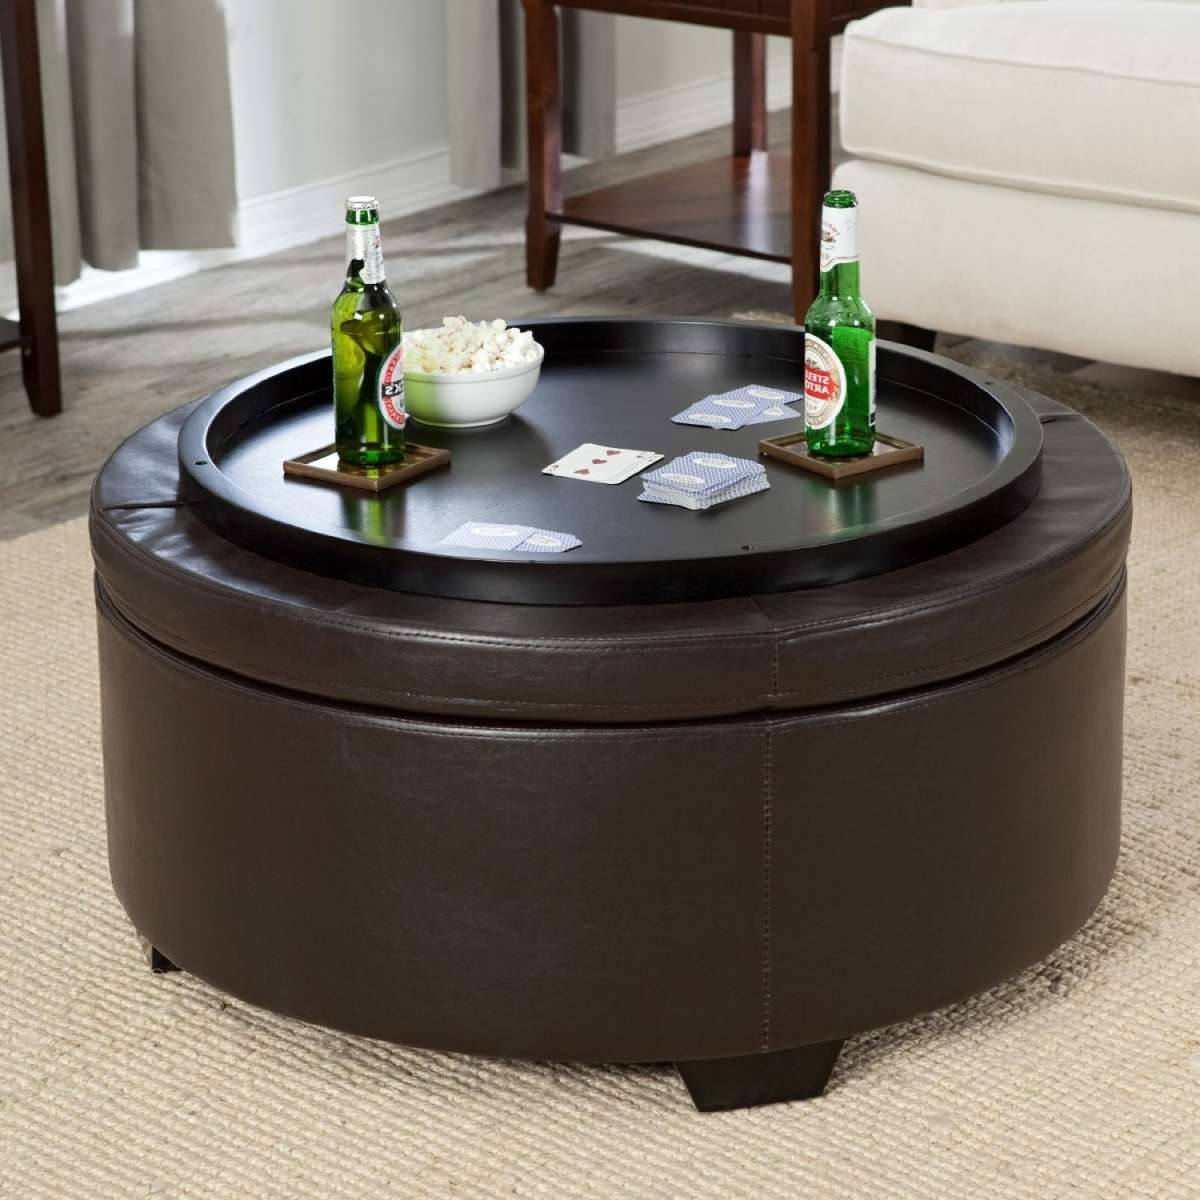 Leather Storage Ottoman Coffee Table — Home Design Ideas Intended For 2018 Round Storage Coffee Tables (View 9 of 20)